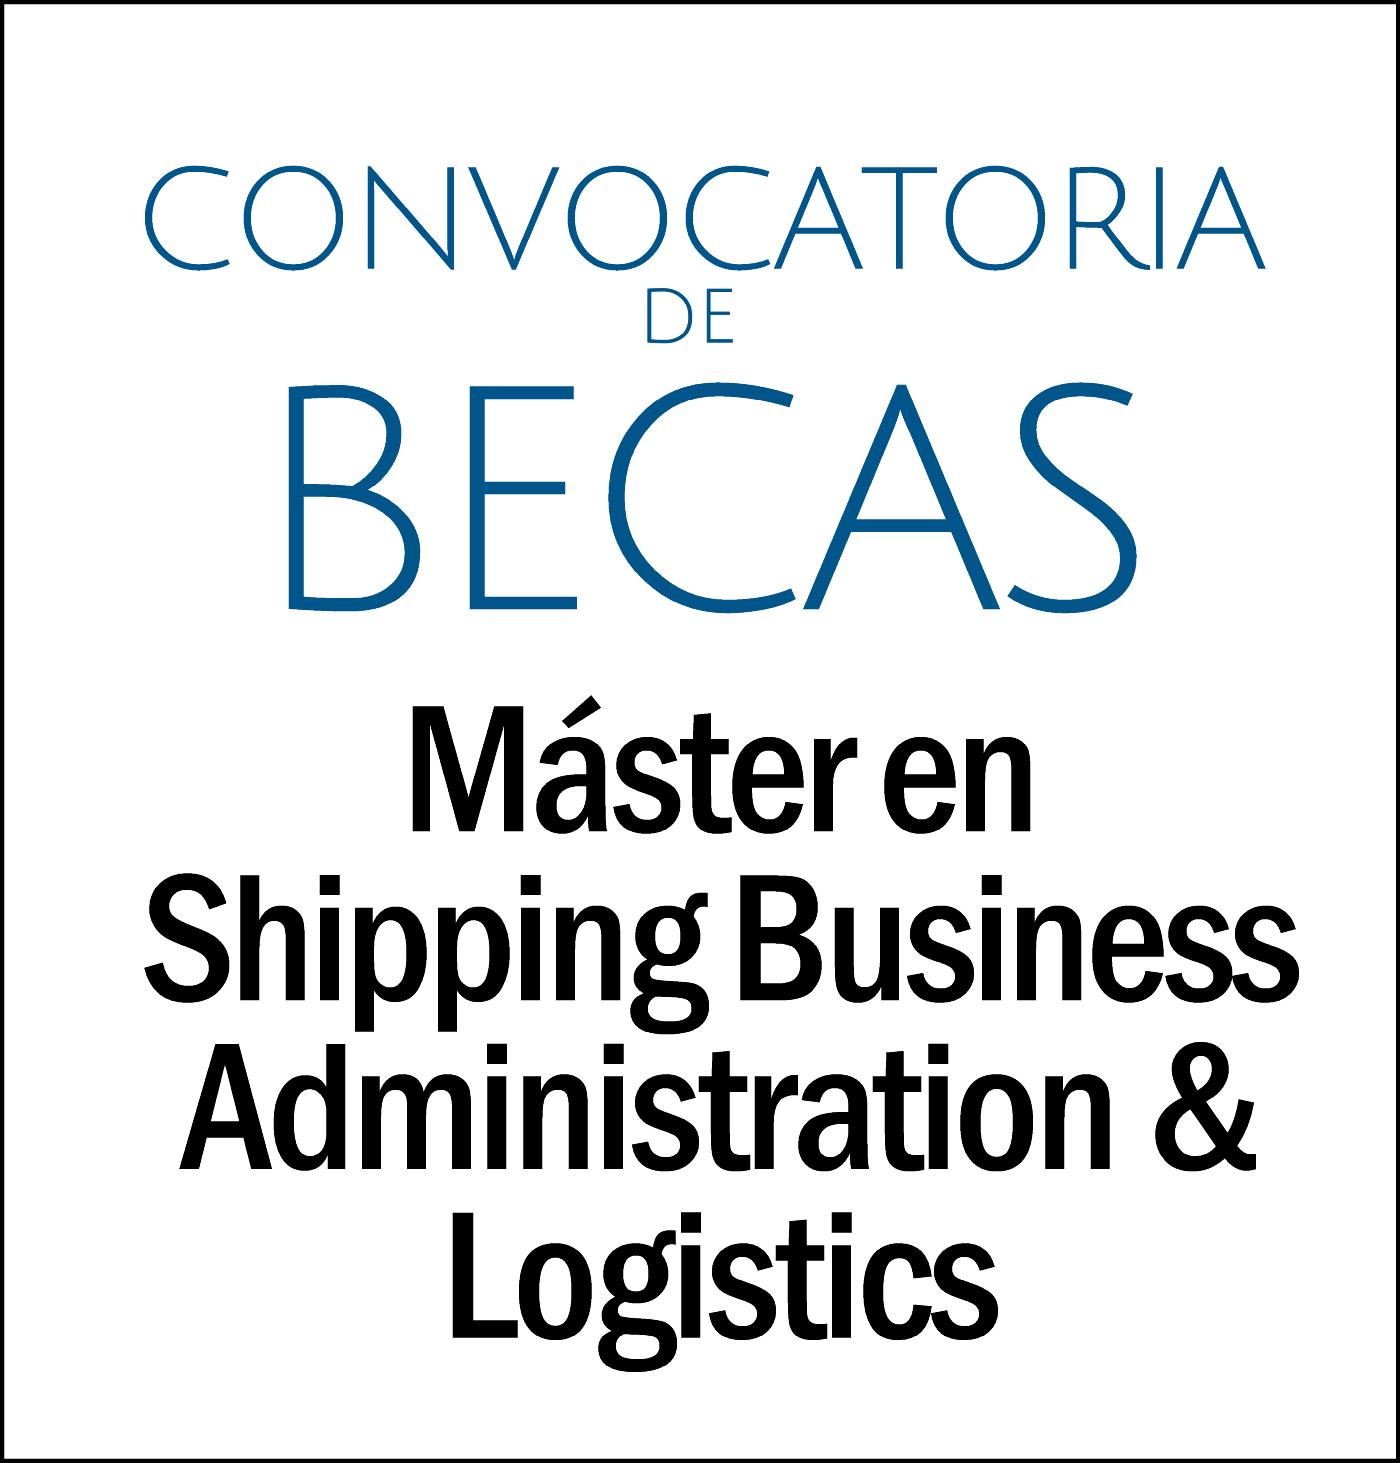 Convocatoria de Becas para el Máster en Shipping Business Administration & Logistics